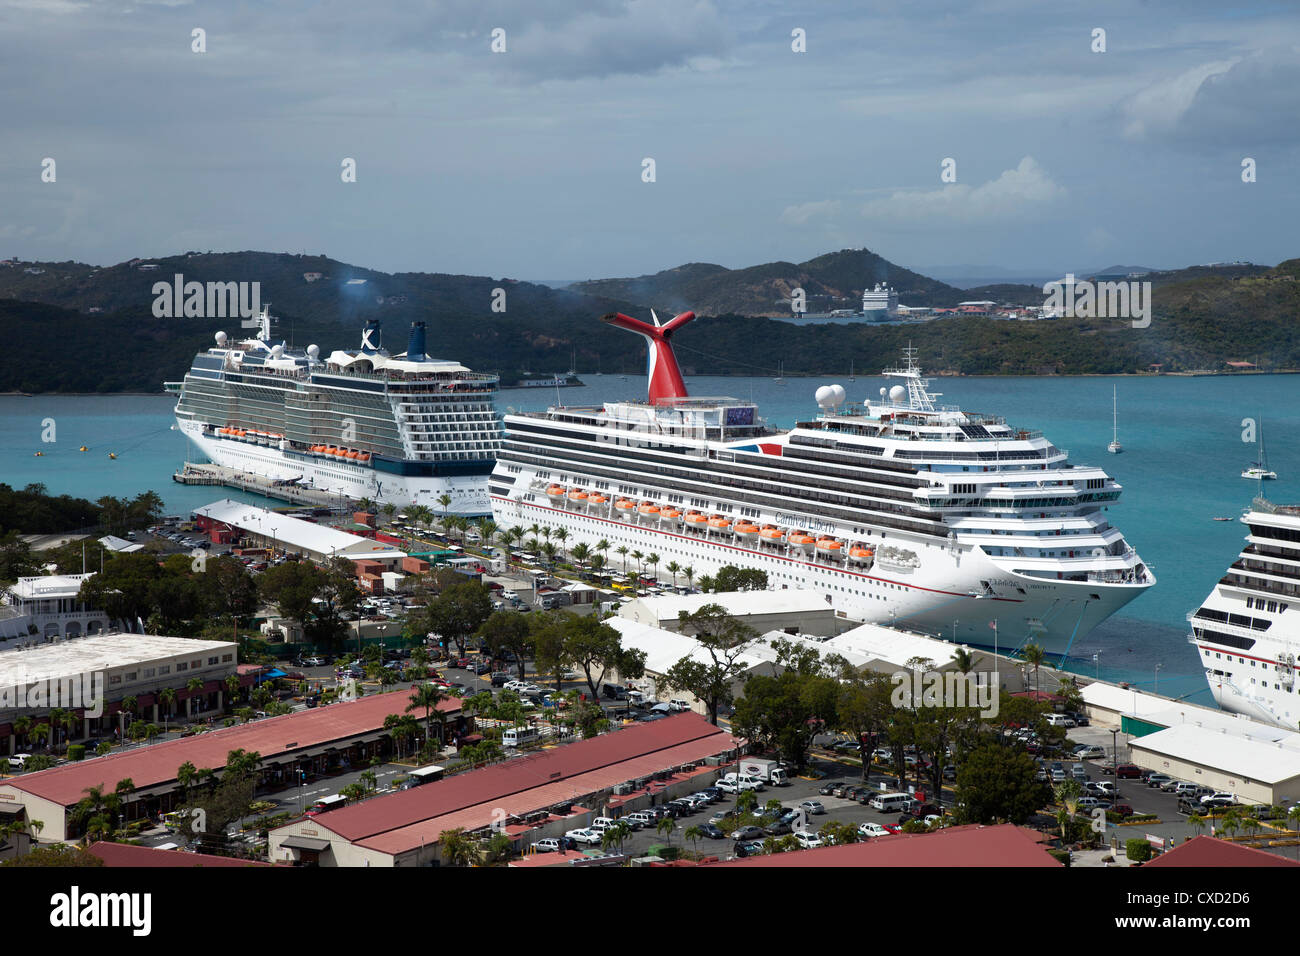 Cruise ships. Charlotte Amalie, St. Thomas, U.S. Virgin Islands, West Indies, Caribbean, Central America - Stock Image